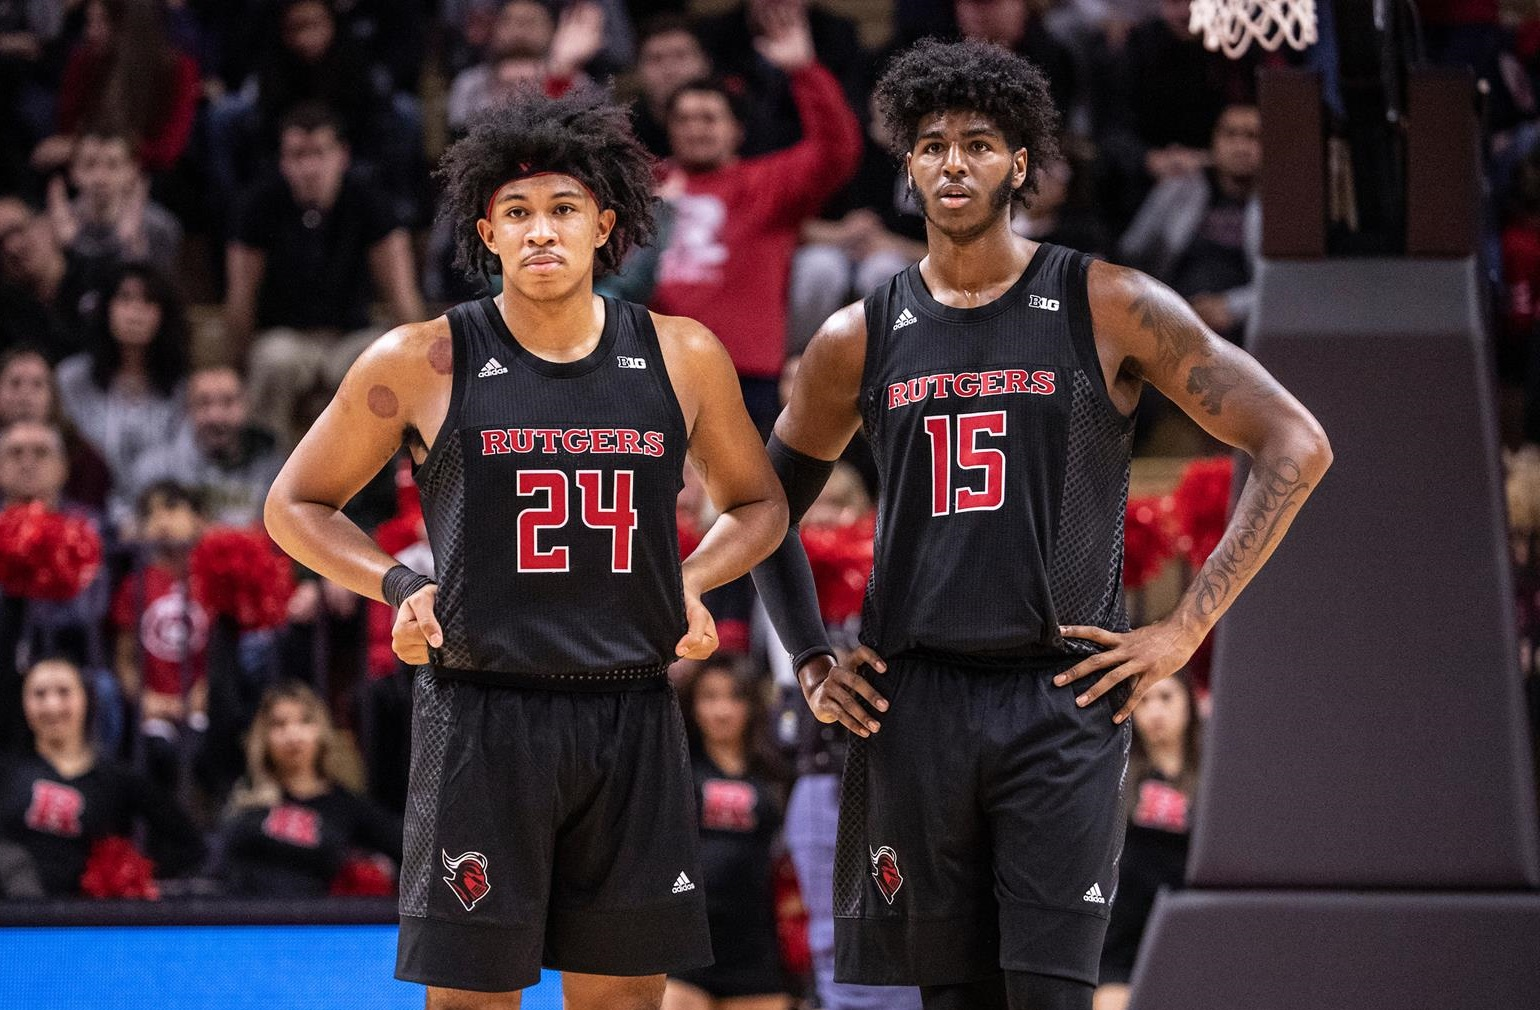 Ron Harper Jr. Myles Johnson Rutgers